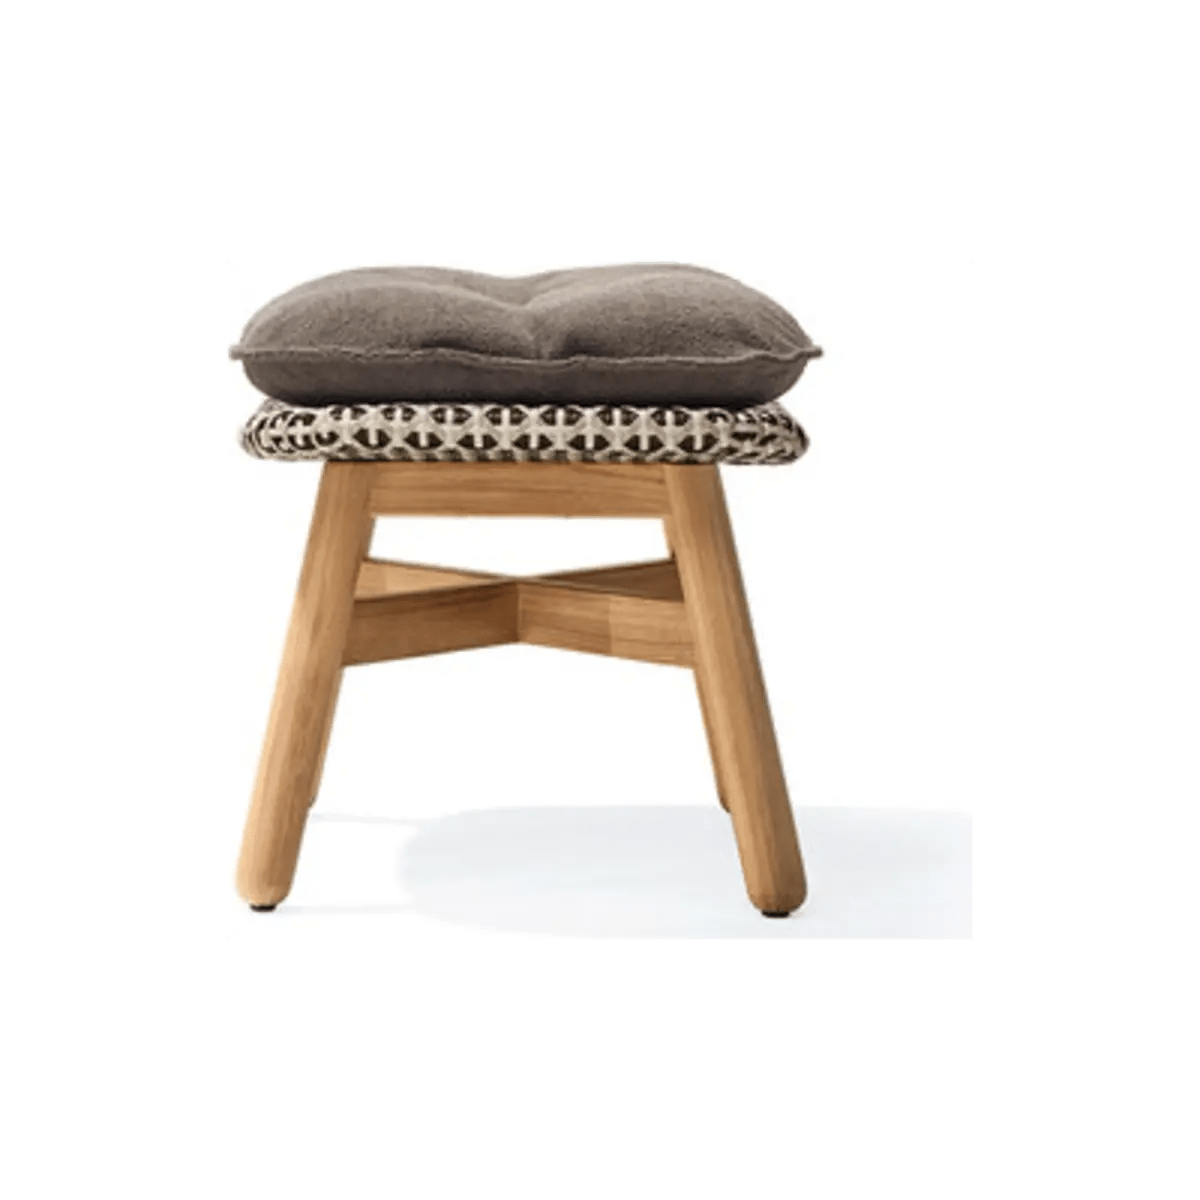 Dedon Mbrace Mbrace Lounge Chair Footstool By Dedon By Dedon Clippings